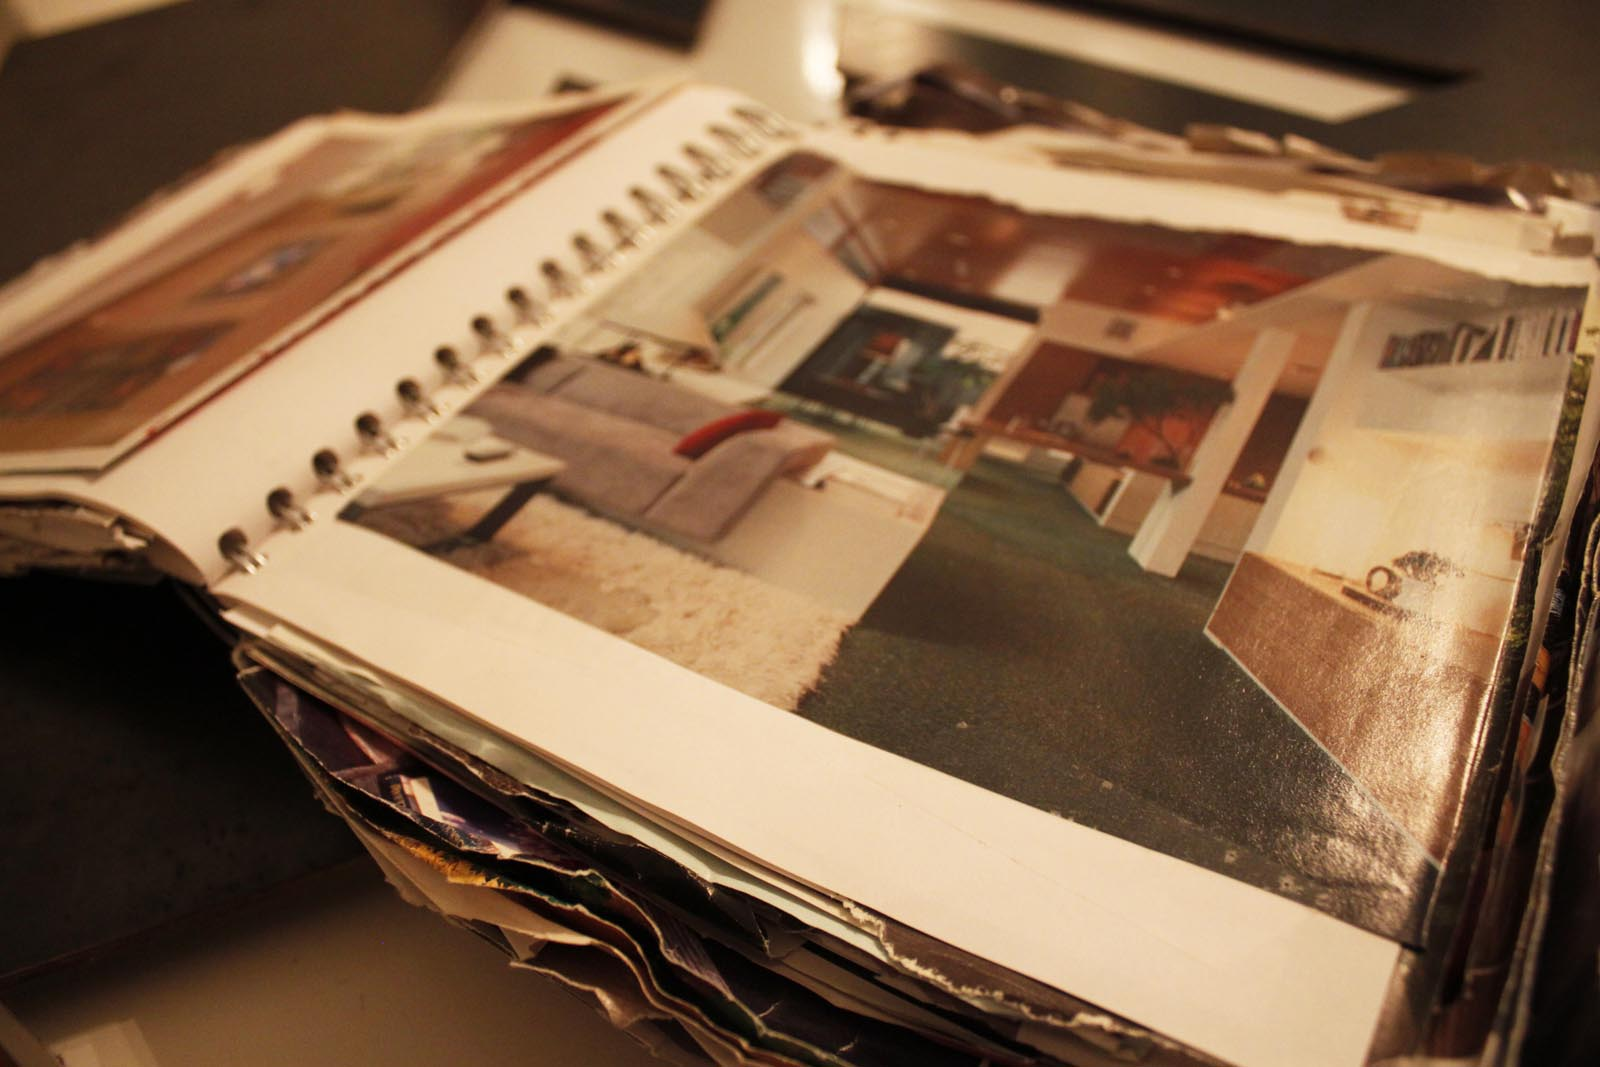 The first real stage of the process before and after we sold our house was to gather examples out of books and magazines of what we'd like to build. We started numerous notebooks and began to collect tear sheets out of design magazines.